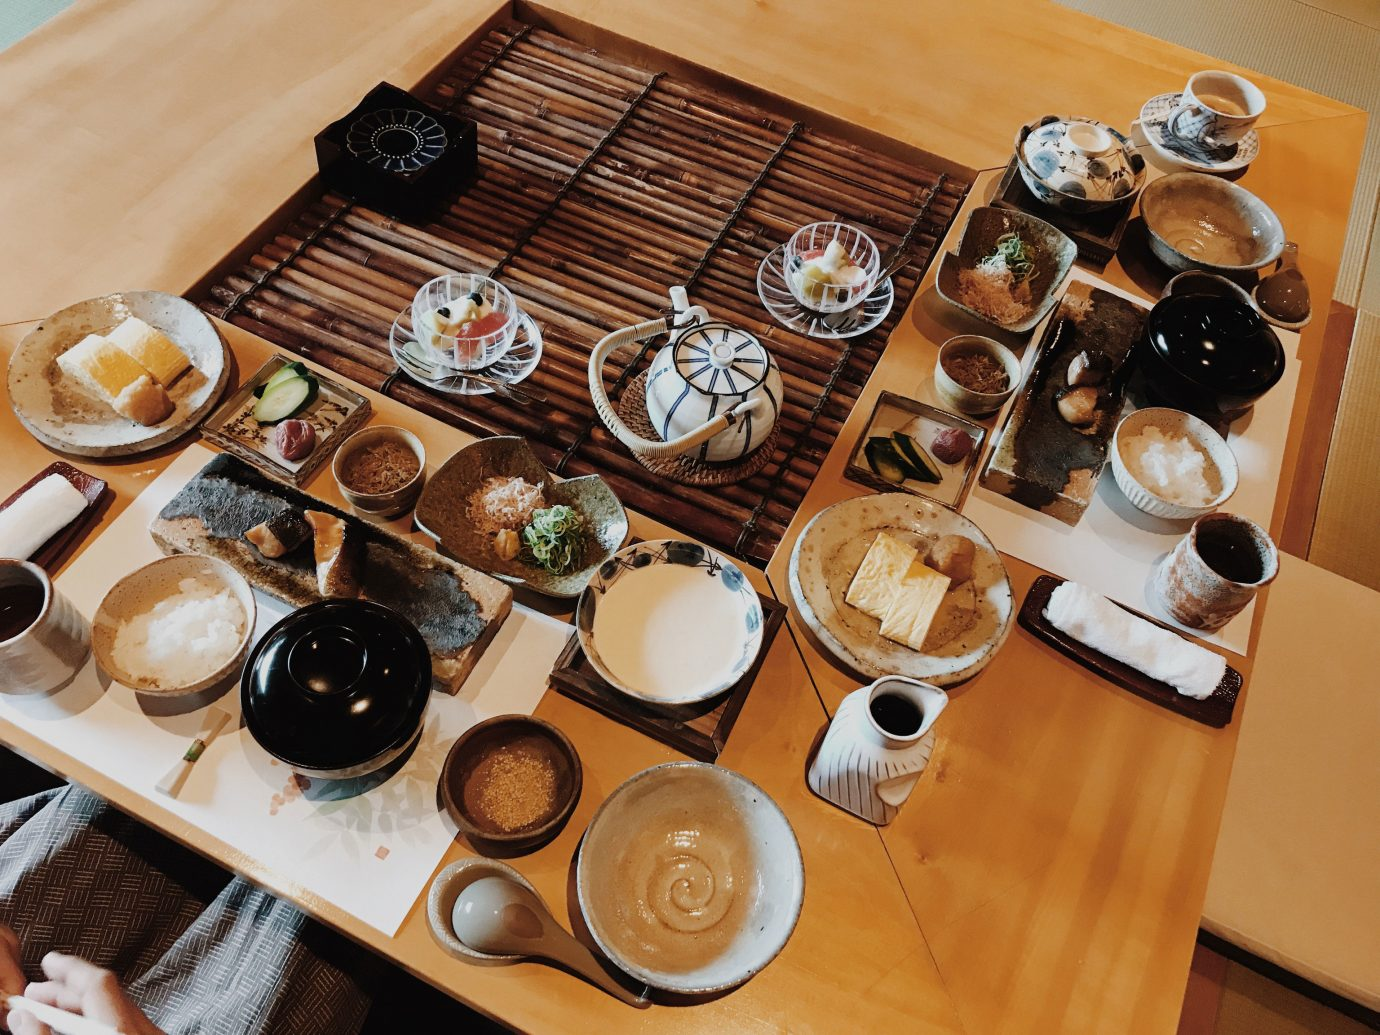 Influencers + Tastemakers Japan Photo Diary Tokyo table indoor plate tableware food meal dish cuisine breakfast brunch finger food coffee cup set variety